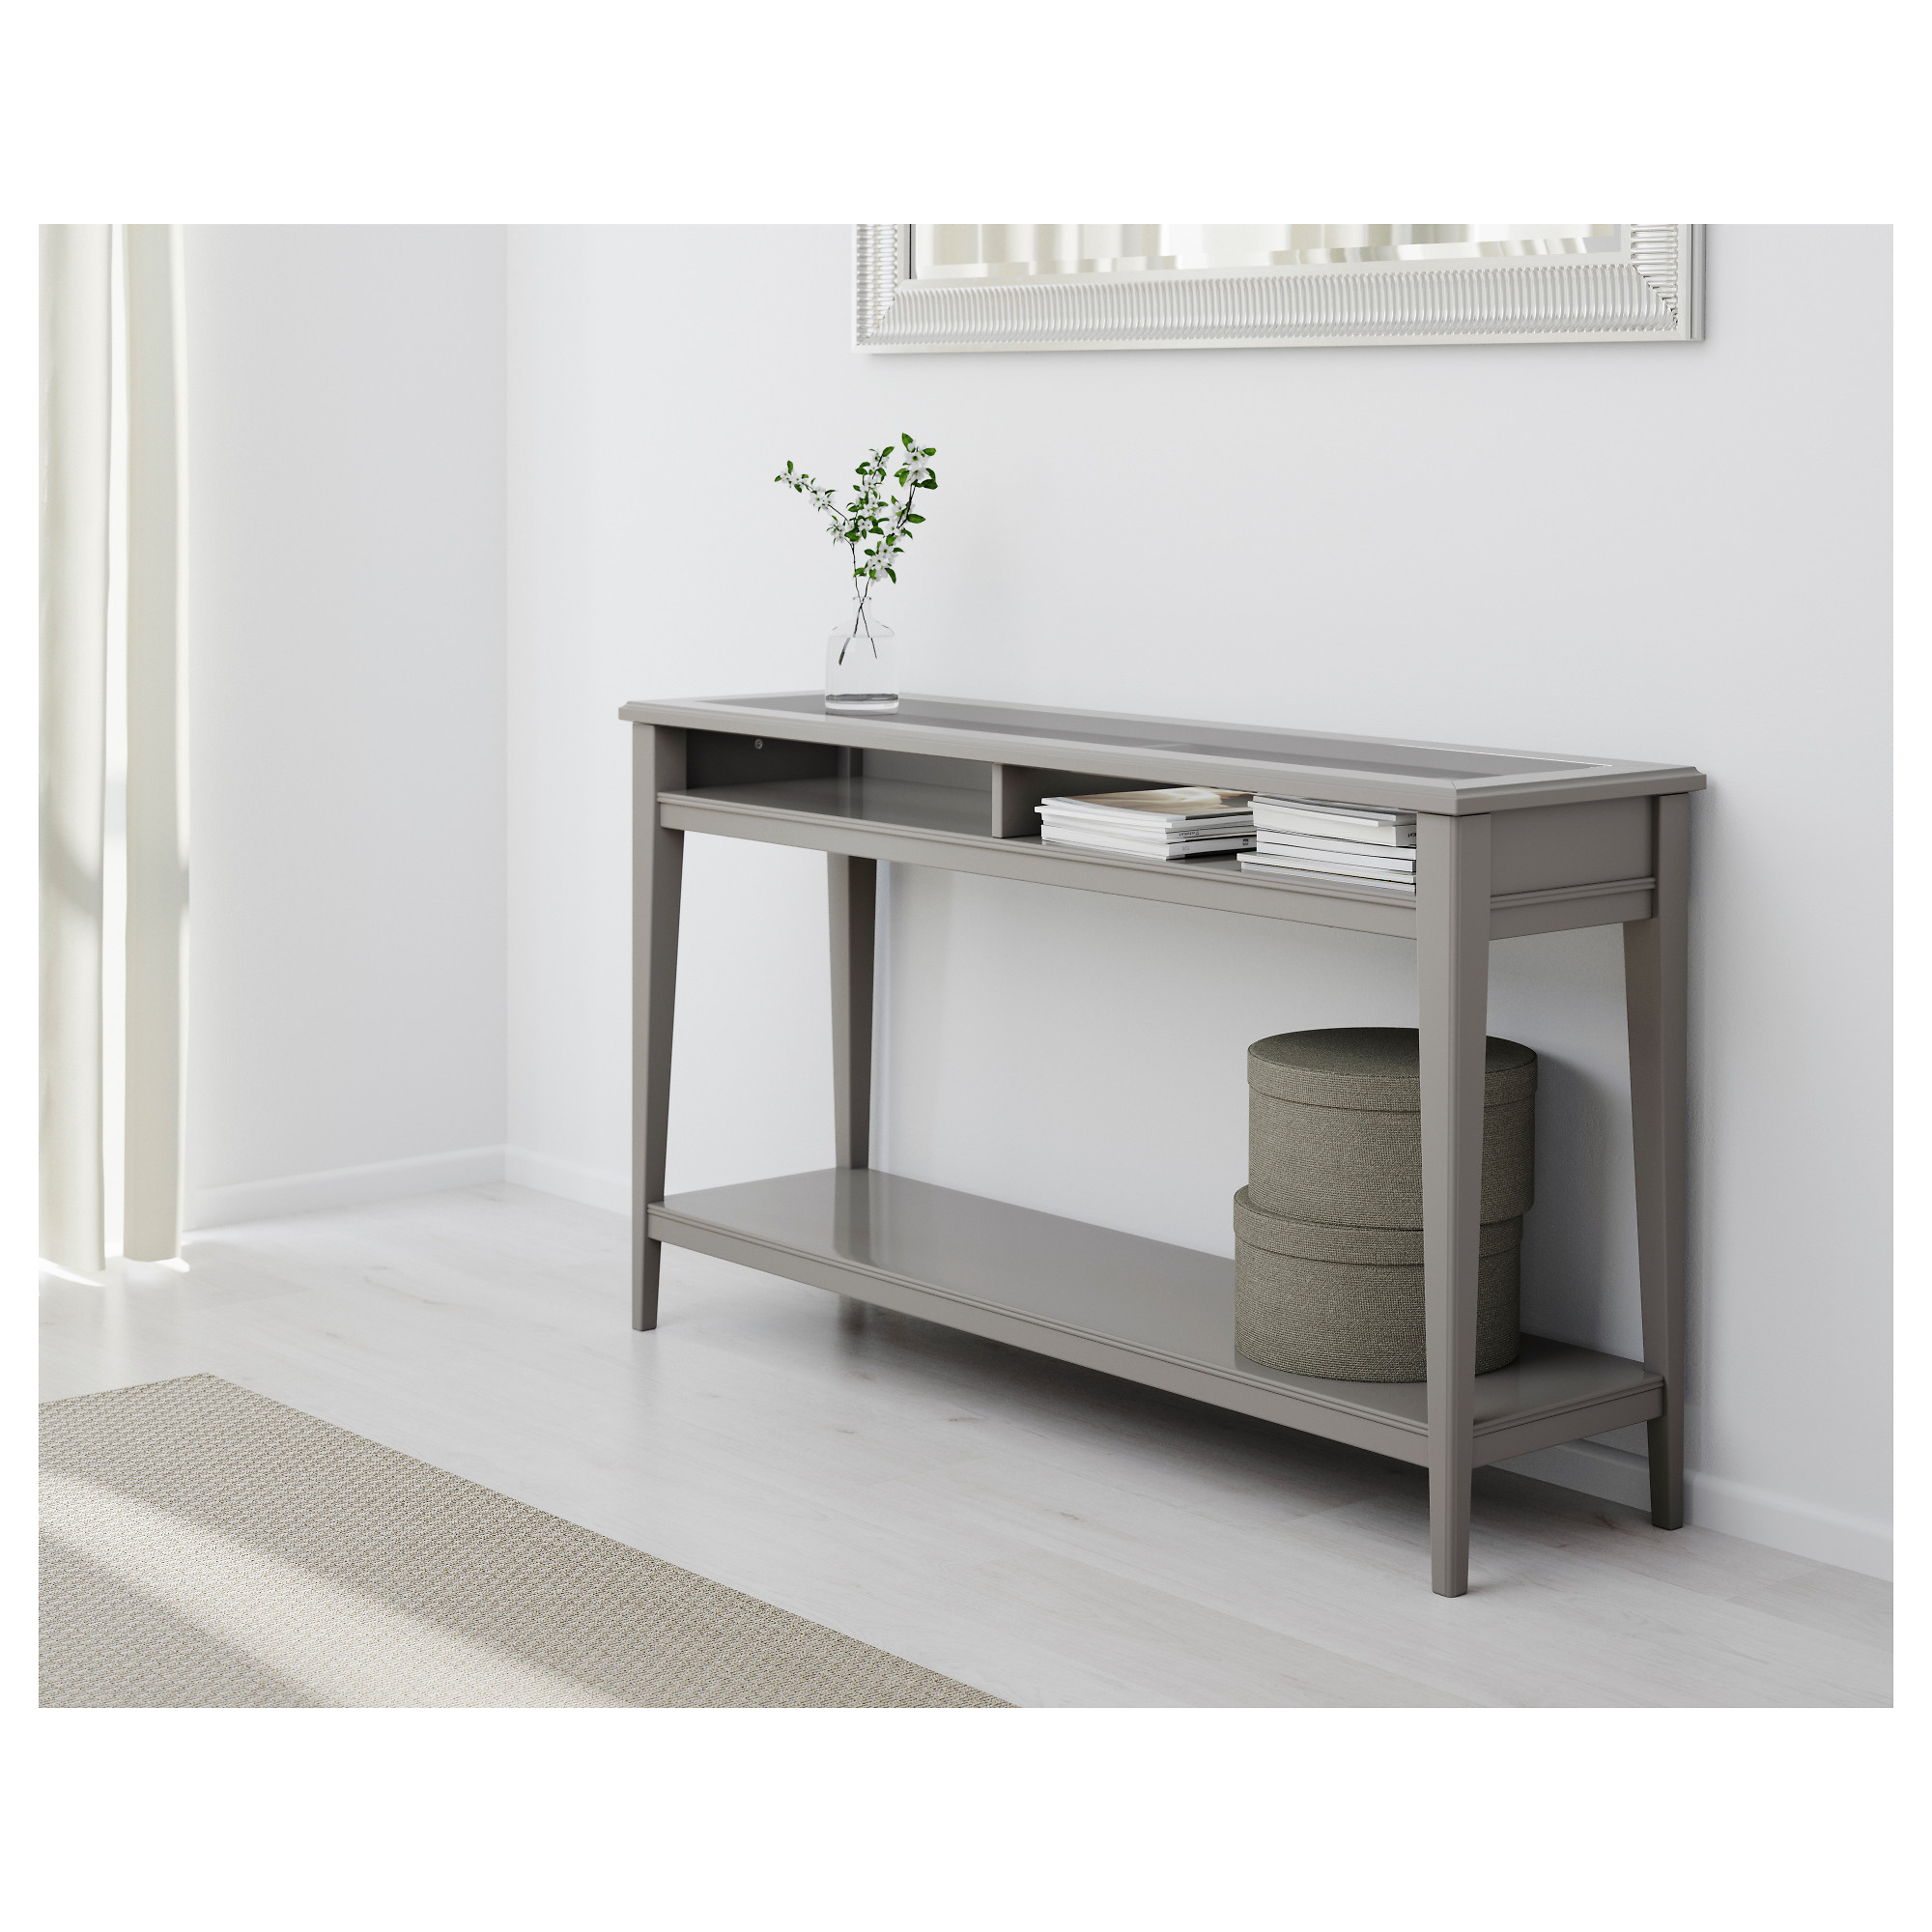 sofa table liatorp console table - white/glass - ikea KGIDRHR